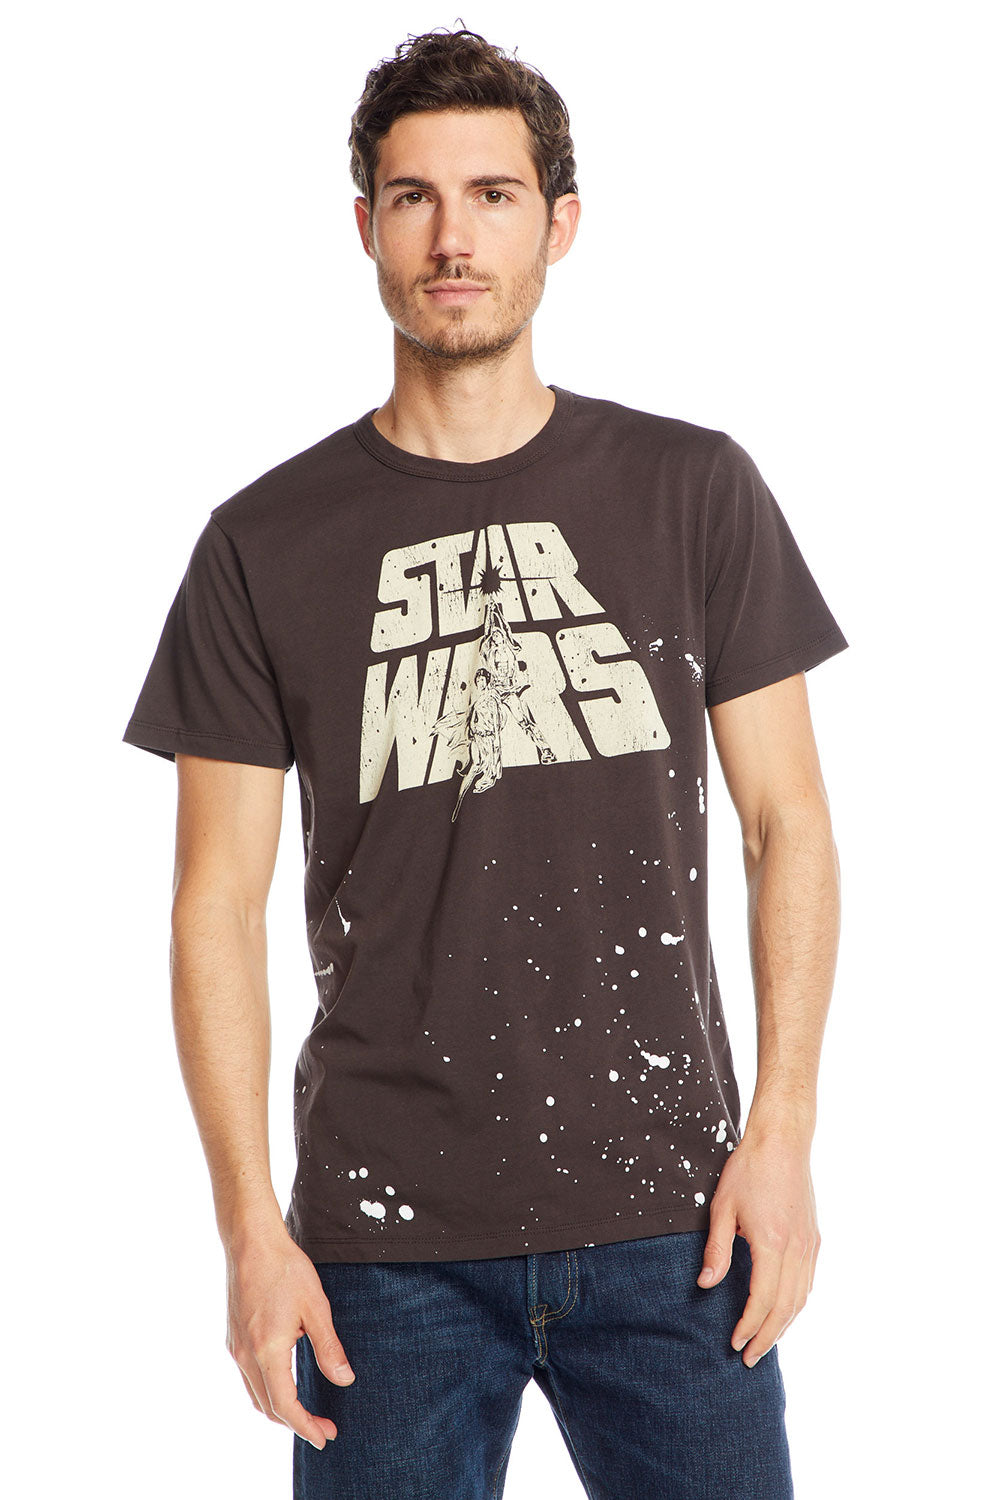 Star Wars - Star Wars Luke & Leia, MENS, chaserbrand.com,chaser clothing,chaser apparel,chaser los angeles